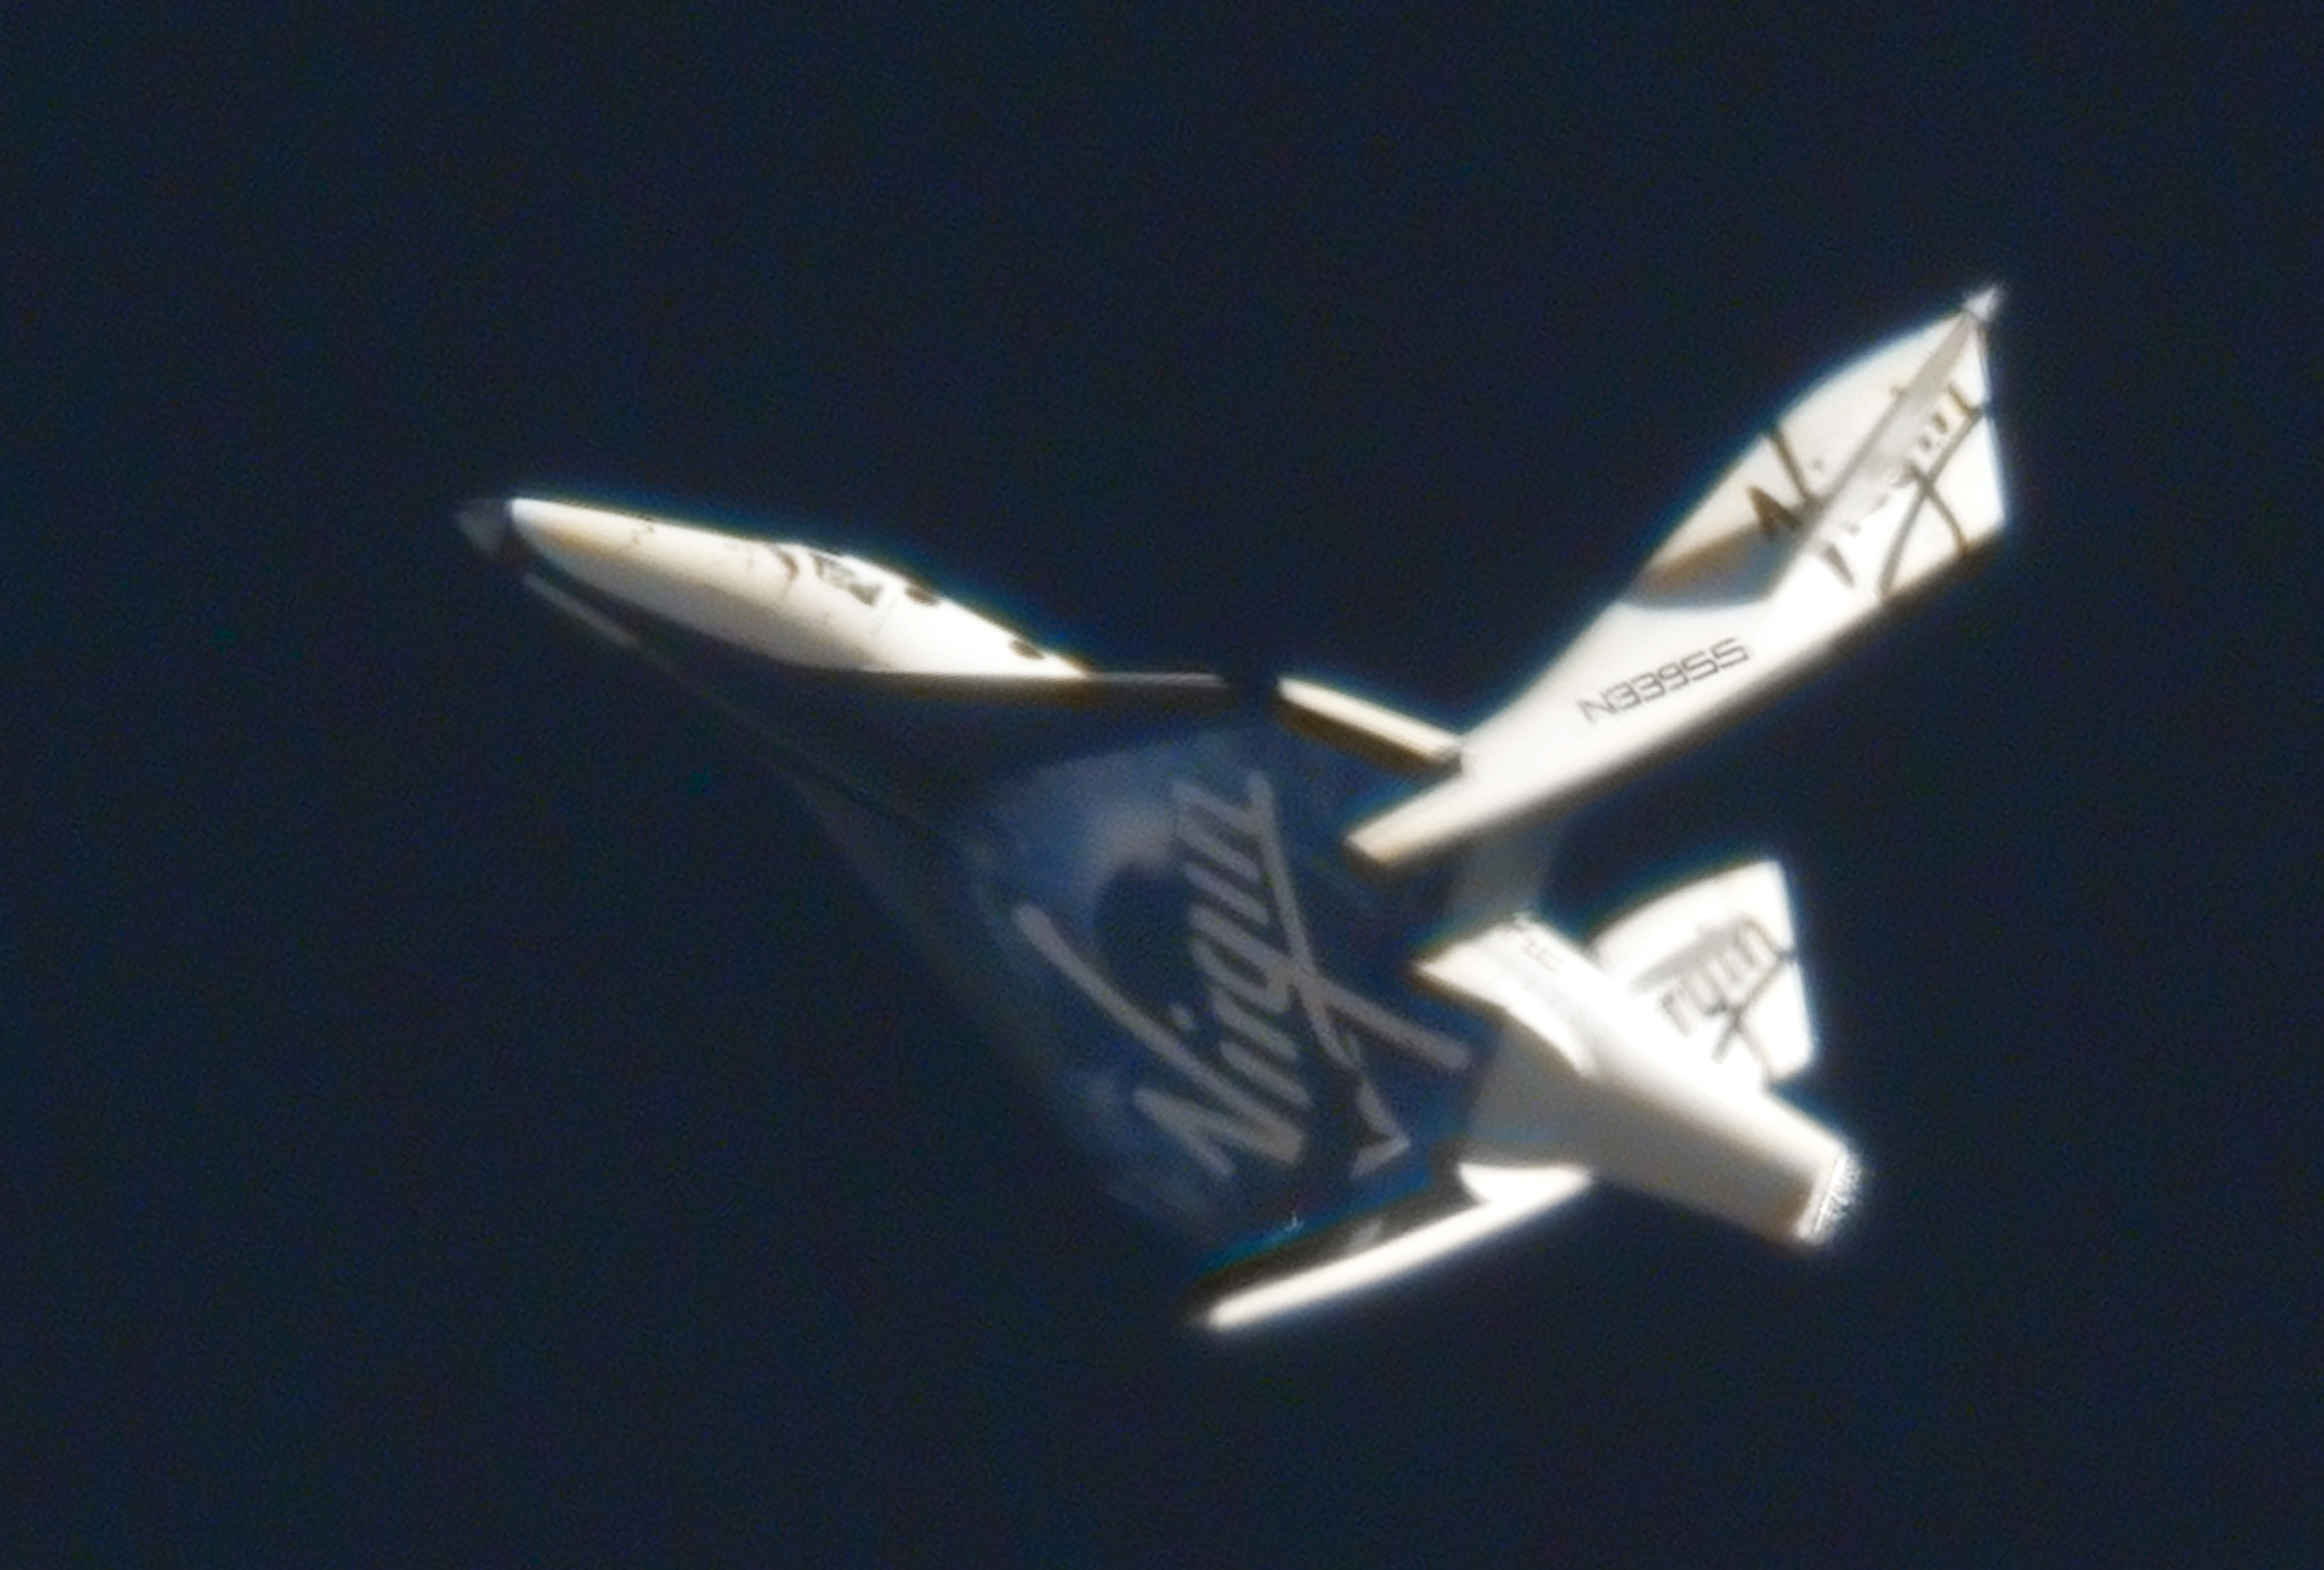 SpaceShipTwo's feathering system is seen deployed on a test flight in 2011. Credit: Clay Center Observatory/Virgin Galactic